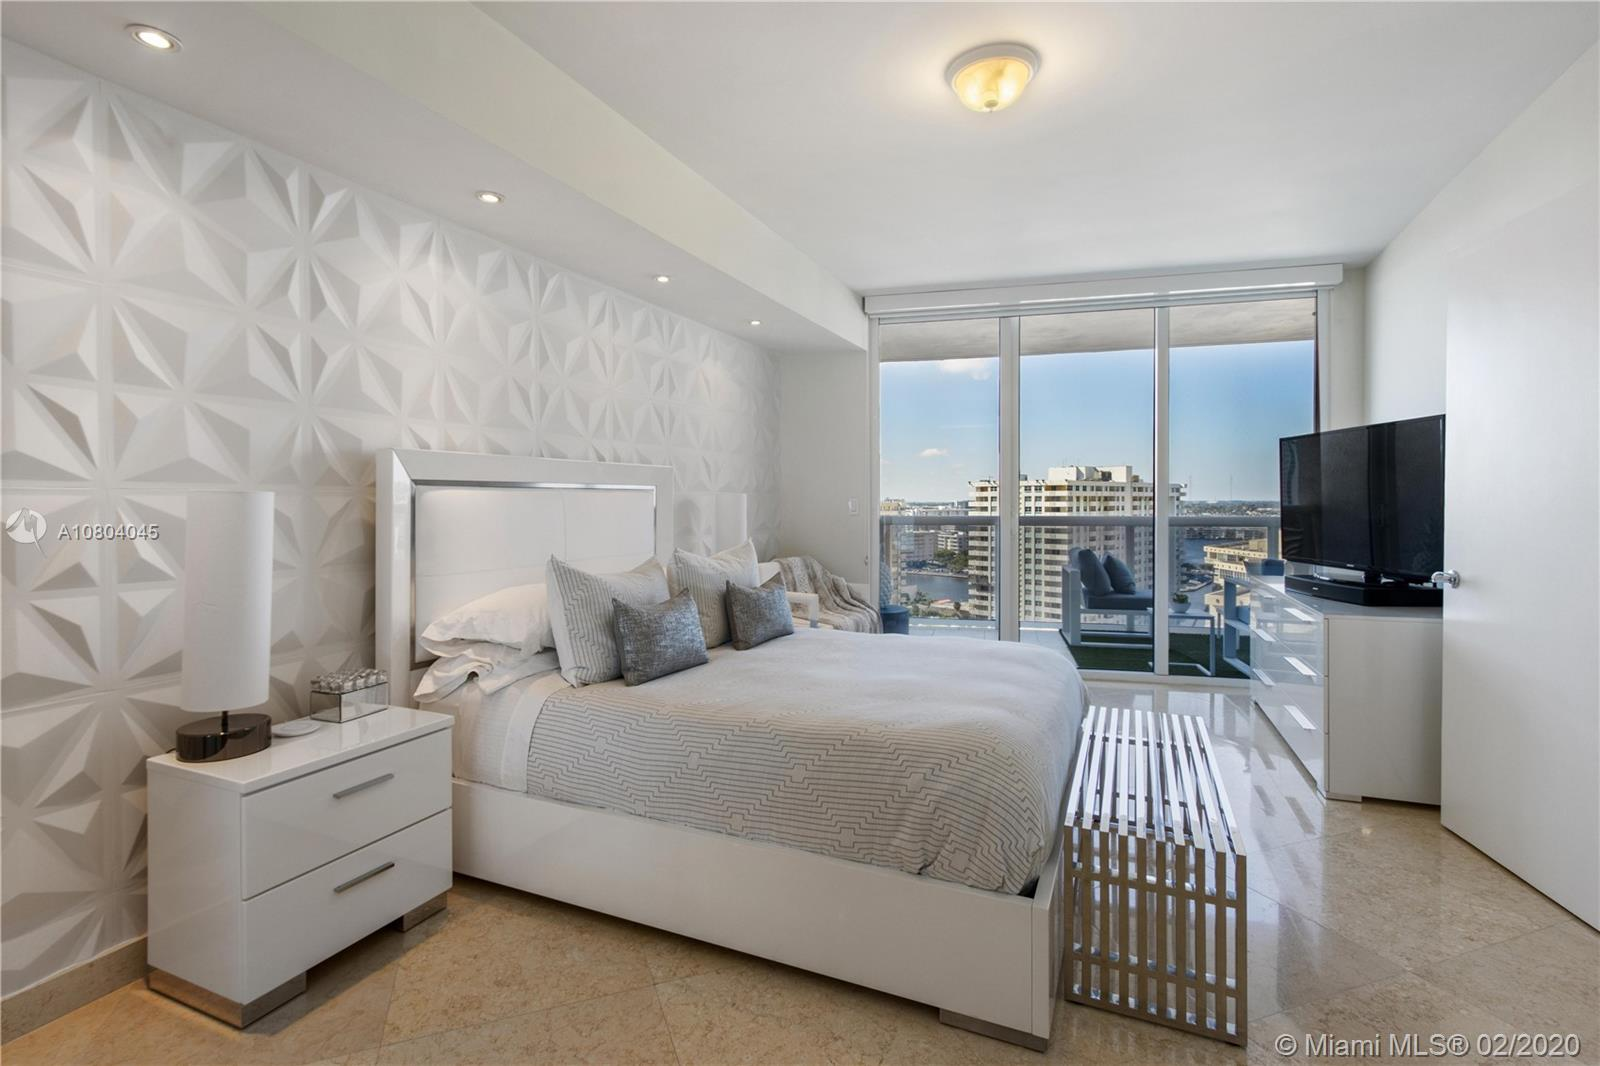 Breathtaking intracoastal and city views awaits you from this 1 bed + den / 1 bath. 1086 Sq Ft unit with a 195 Sq. Ft. Balcony. Marble floors, located directly on the ocean, building features a 40,000 sq. ft. full service spa & fitness center, restaurant, bar with pool service features a 40,000 sq ft. full service spa & fitness center, restaurant, bar with pool service, 24 hr. valet parking and security. It includes a 9 acre with 810 ft. of ocean frontage.